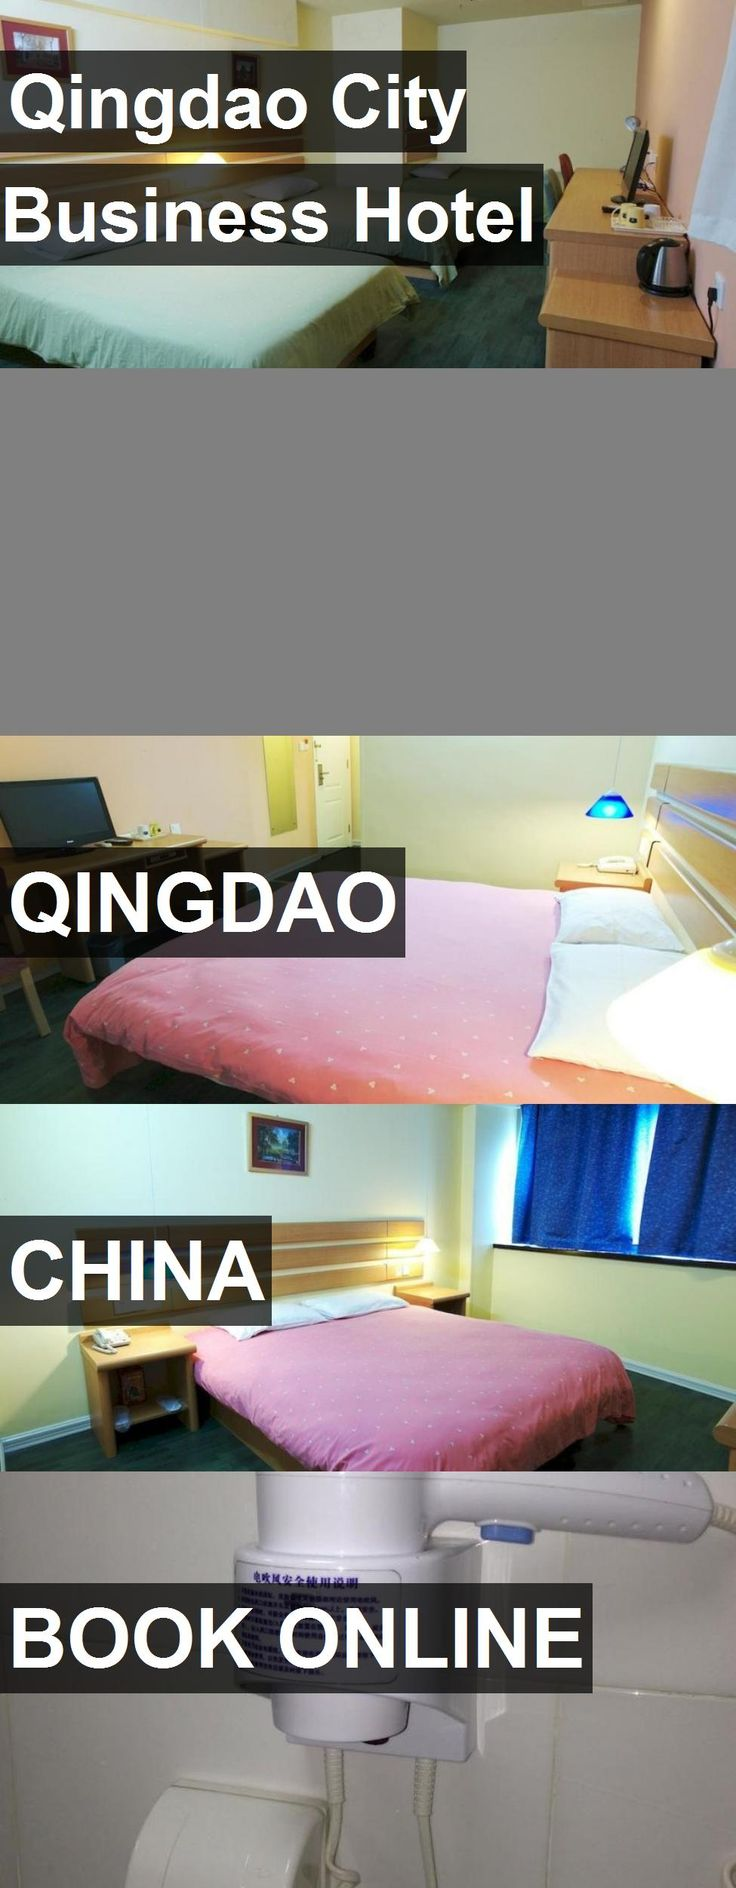 Qingdao City Business Hotel in Qingdao, China. For more information, photos, reviews and best prices please follow the link. #China #Qingdao #travel #vacation #hotel